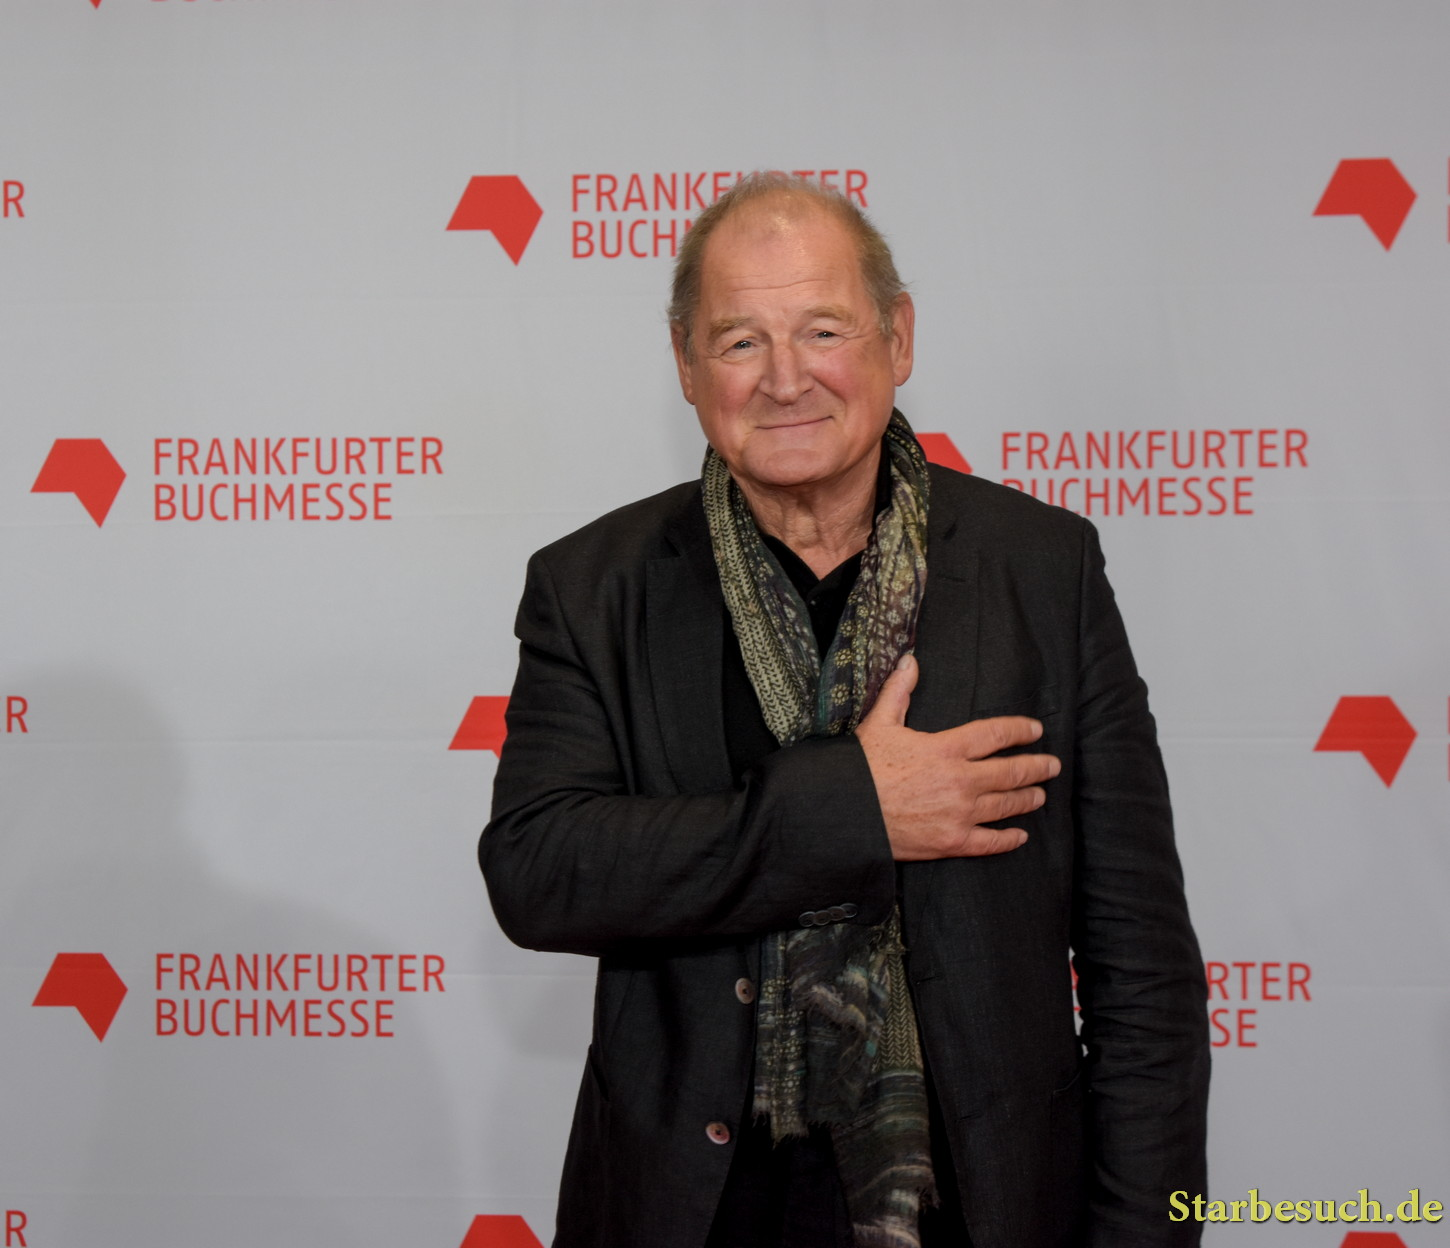 Burghart Klaussner arriving on the red carpet for the Frankfurt Bookfair / Buchmesse Frankfurt 2017